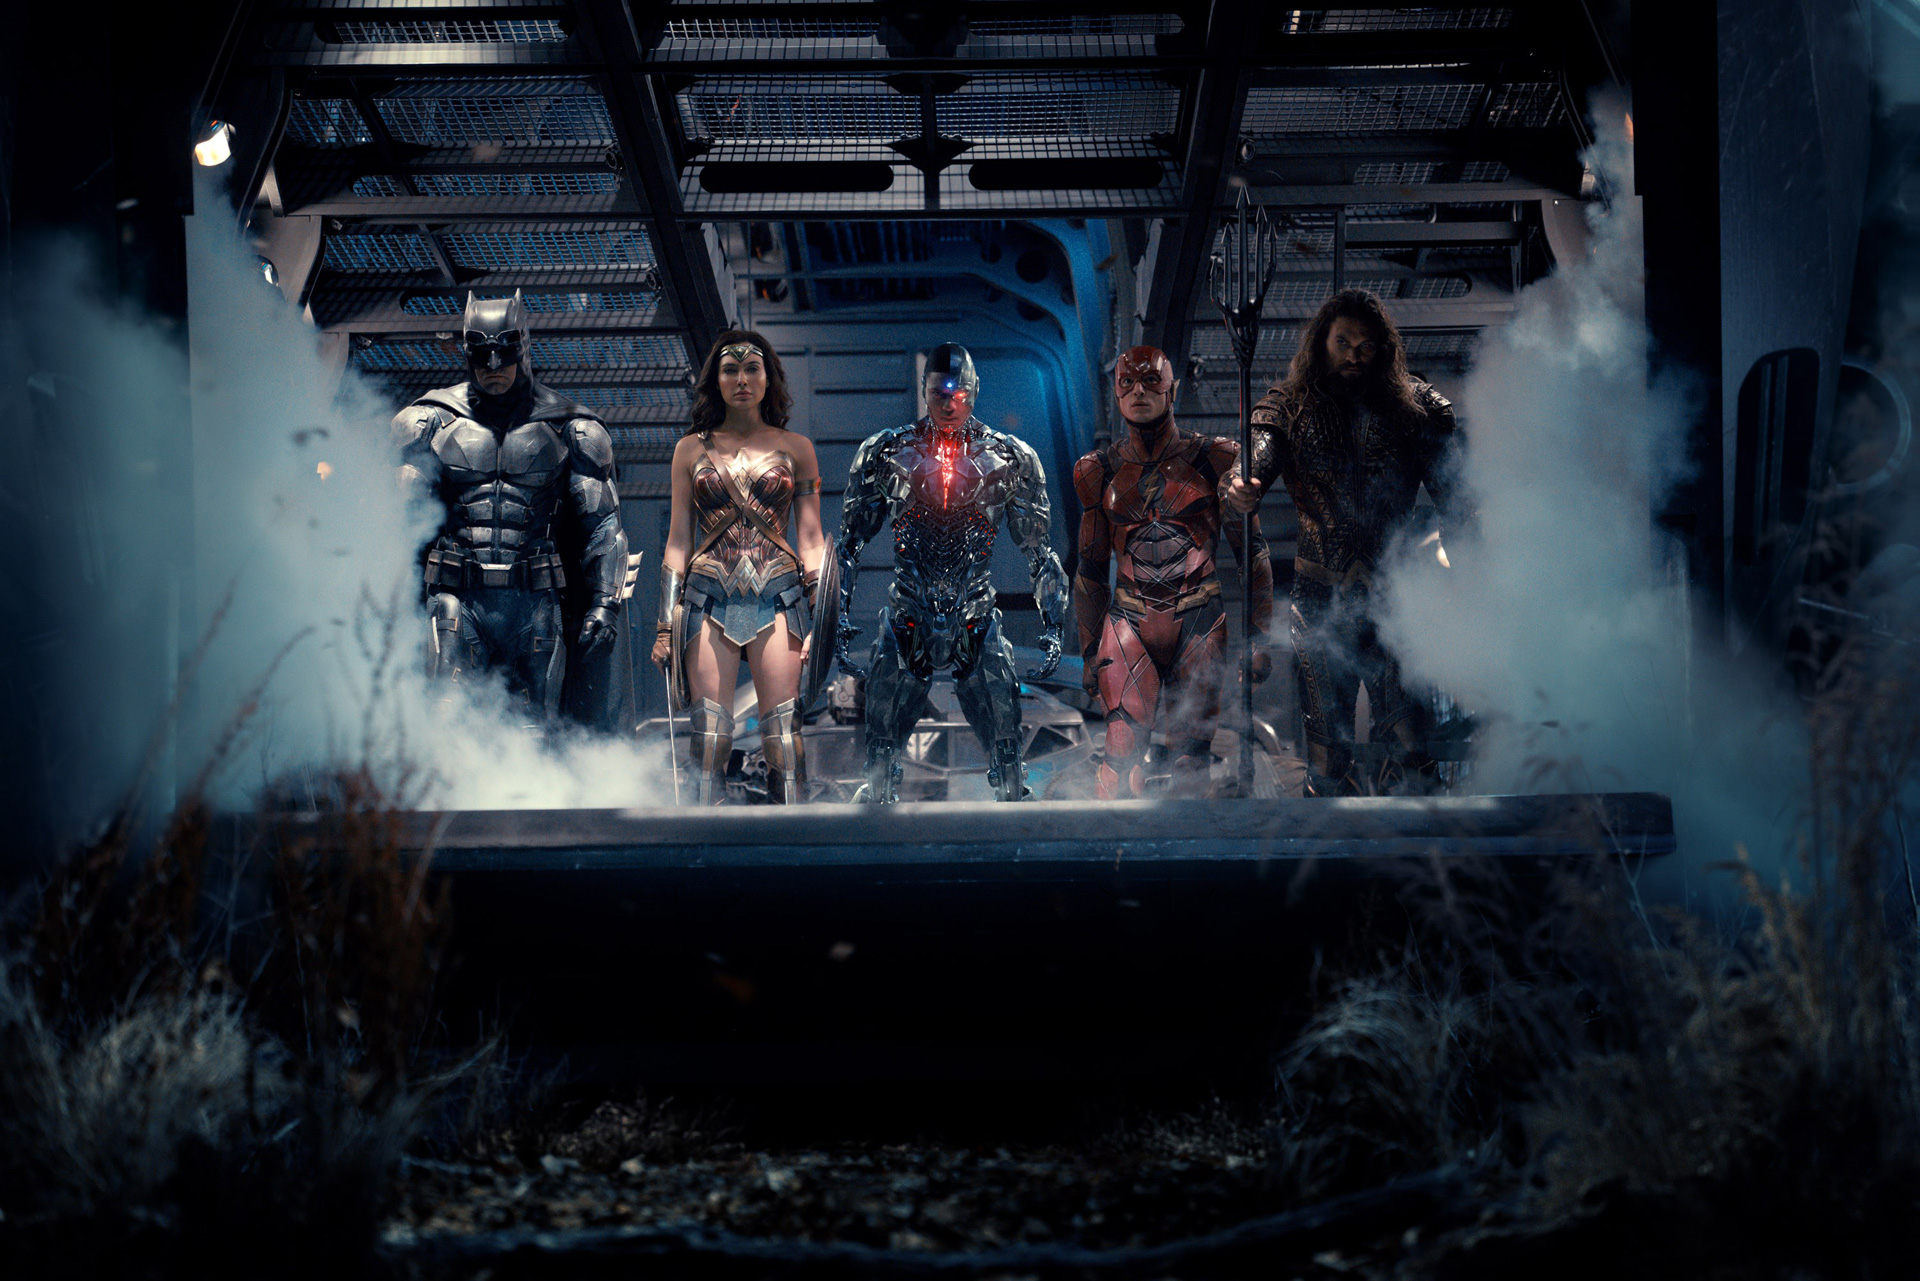 Justice League Hi-Res Team Photo